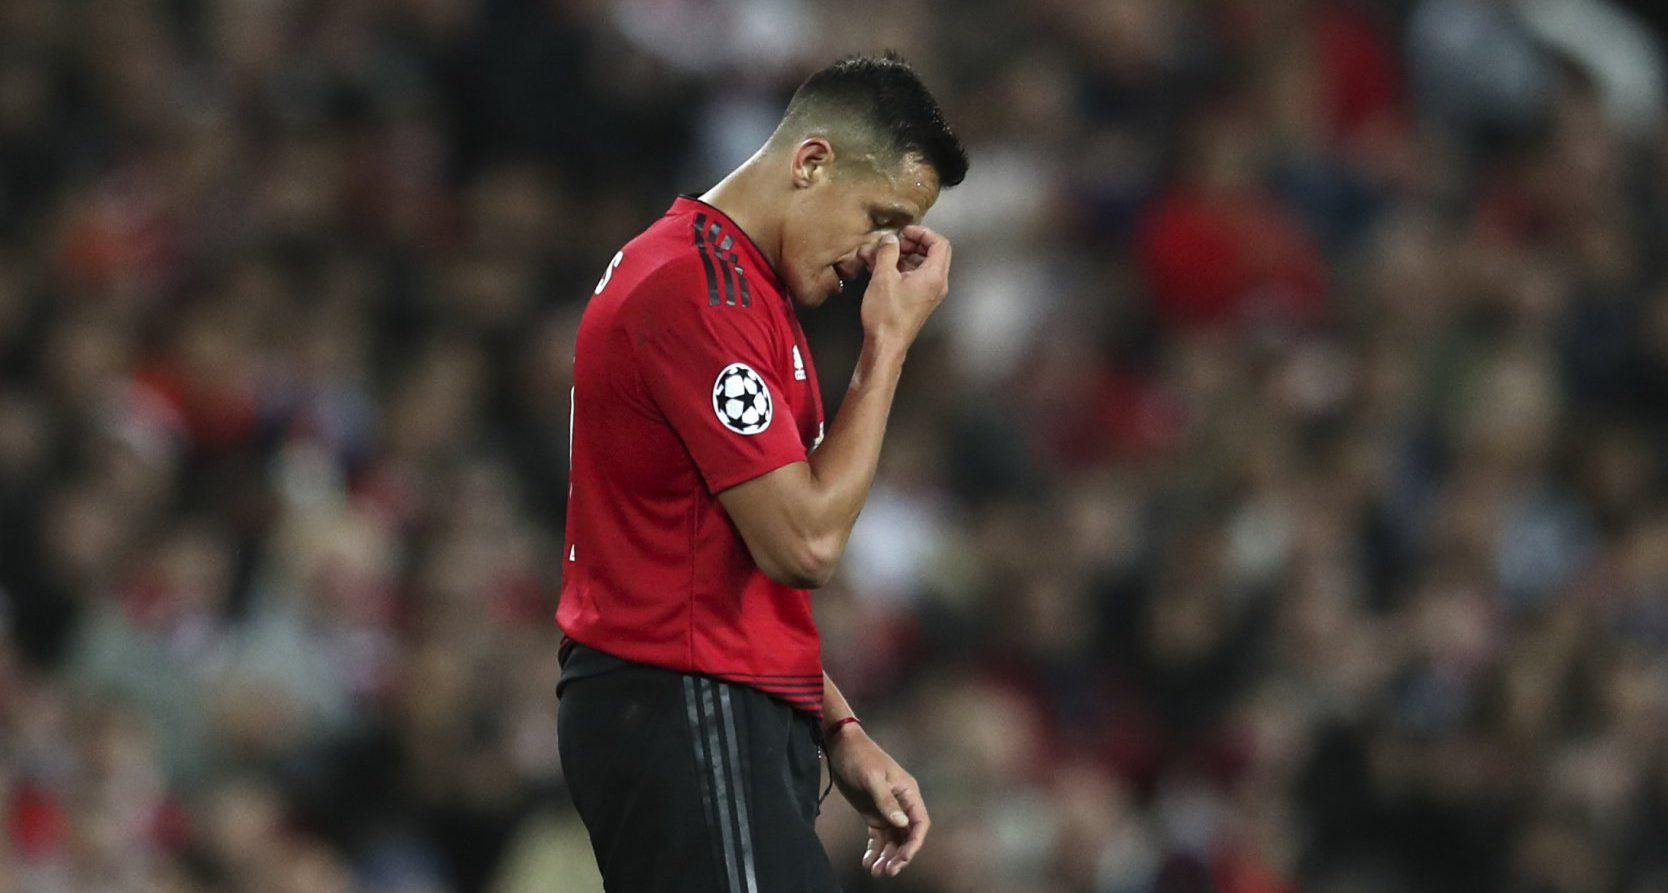 Alexis Sanchez ordered to hurry up by Manchester United crowd after walking off during substitution against Valencia